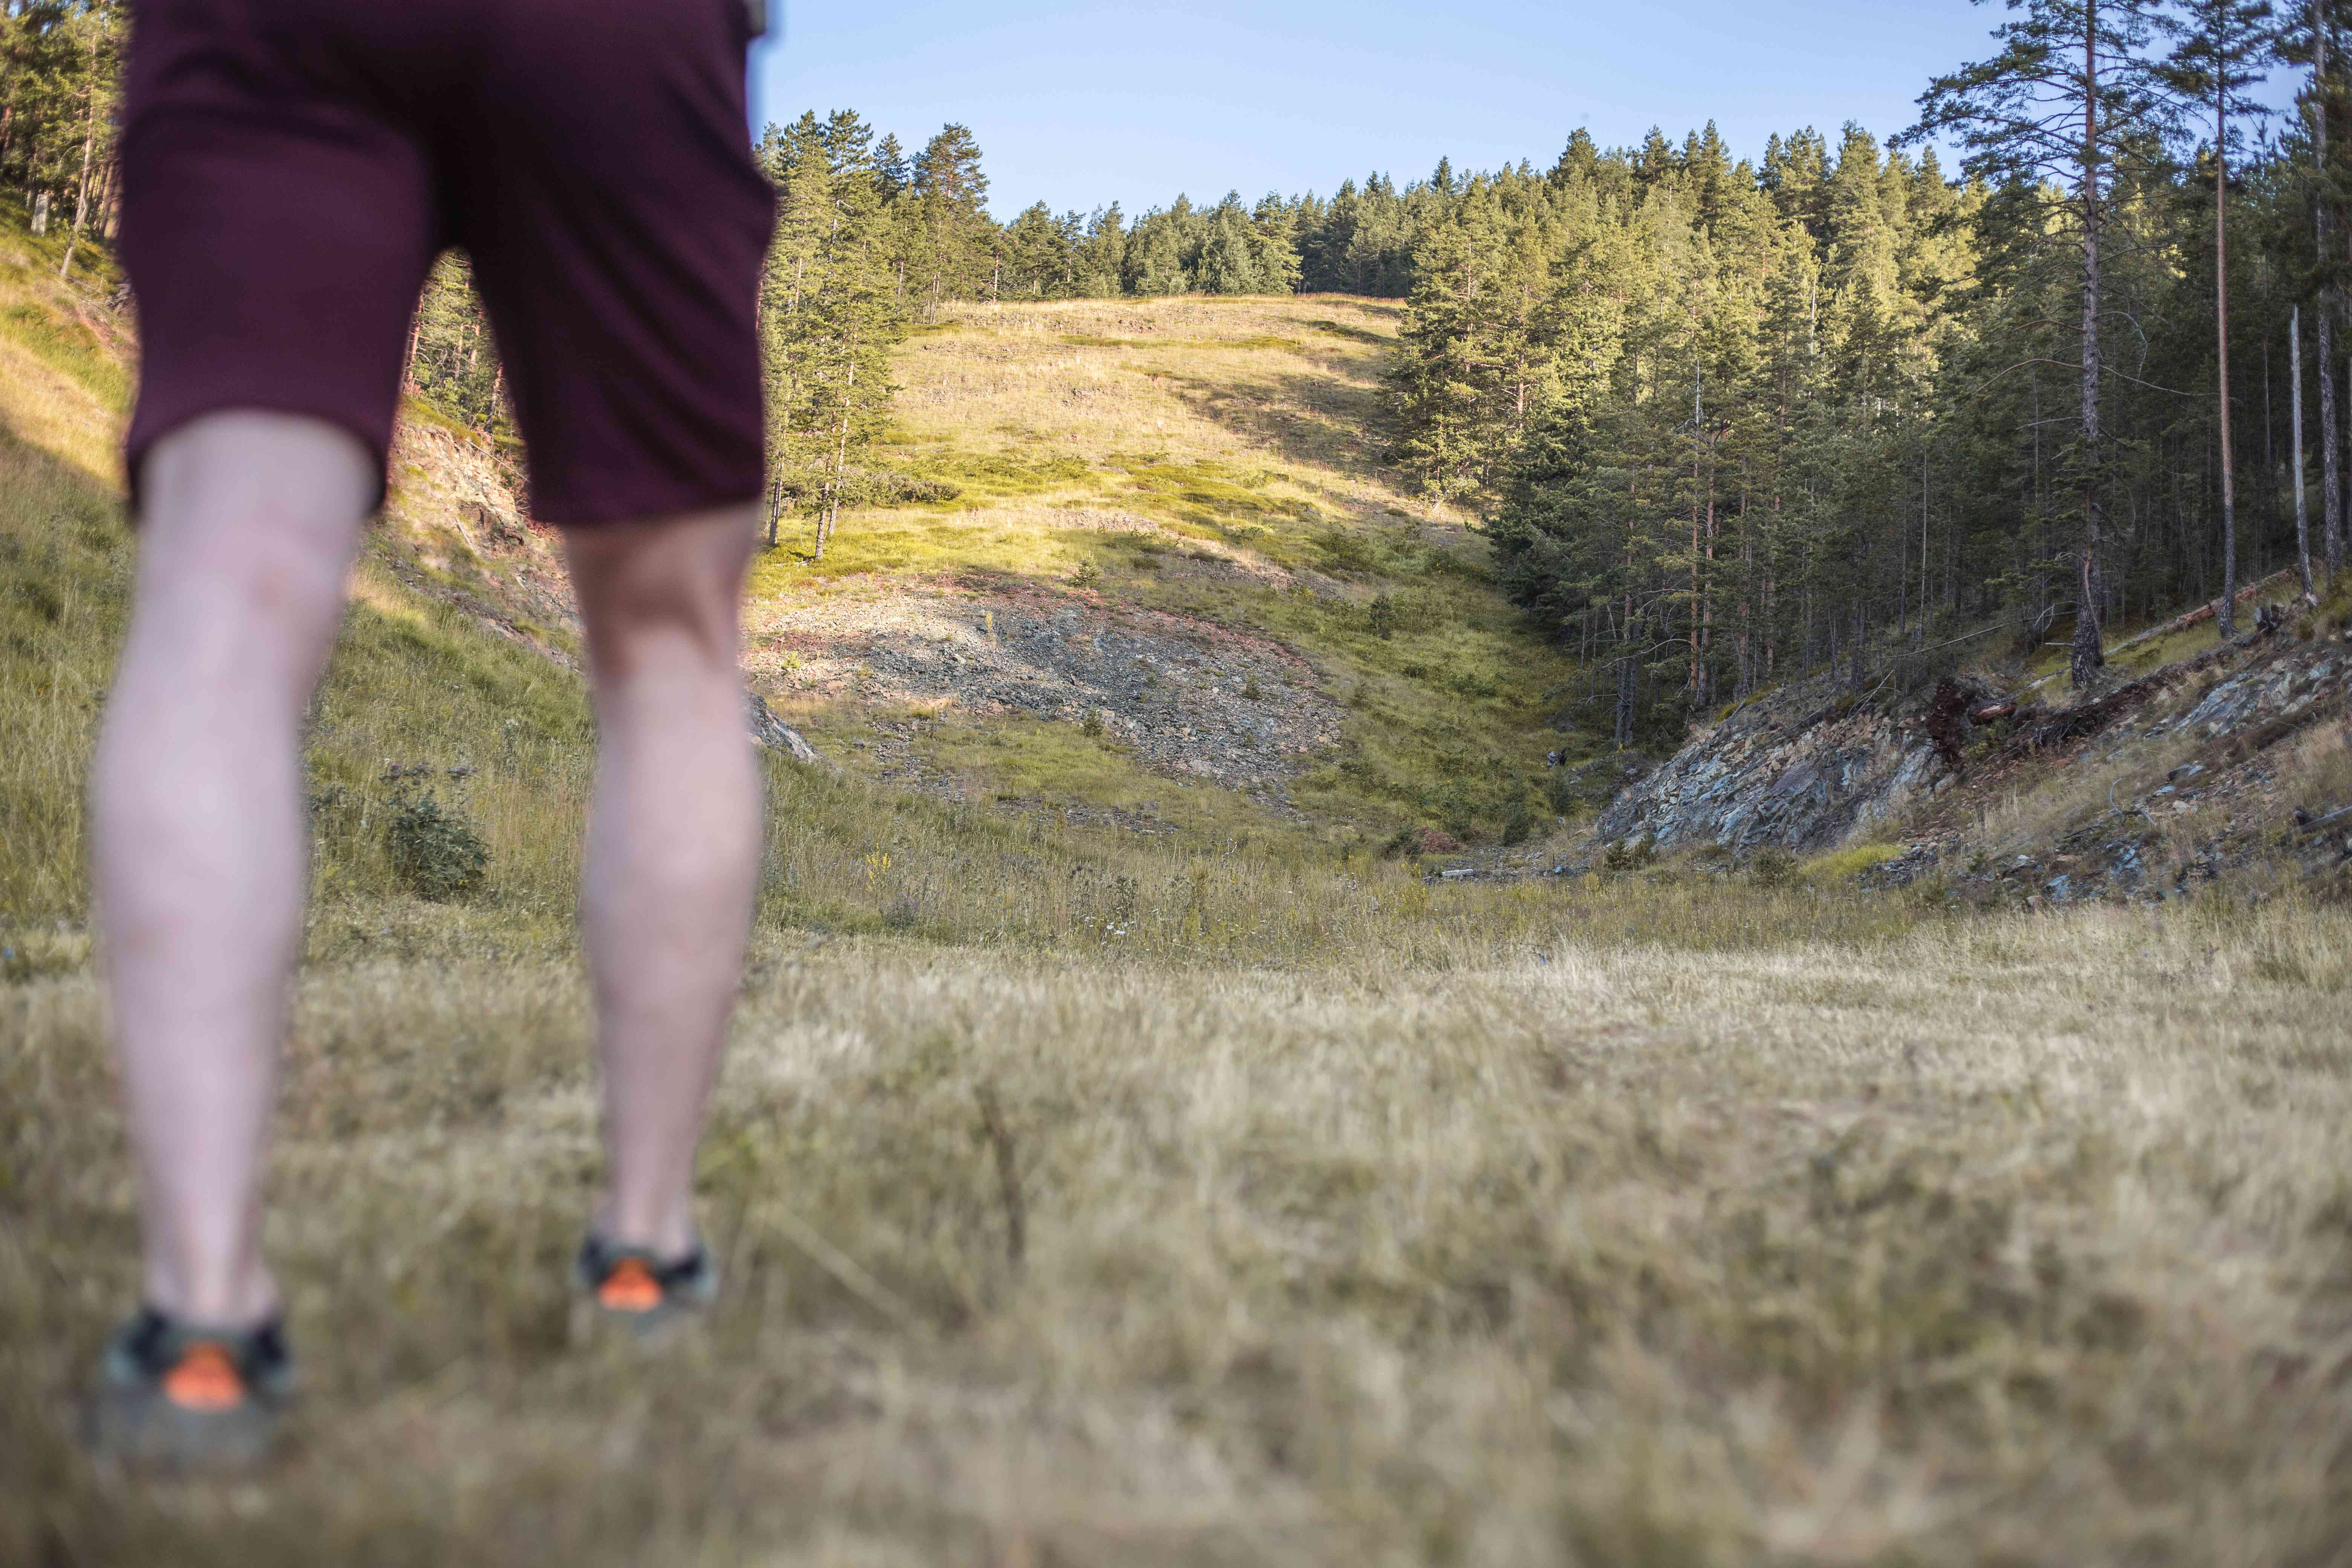 guy in shorts prepares to walk up steep incline on wooded, rocky hill